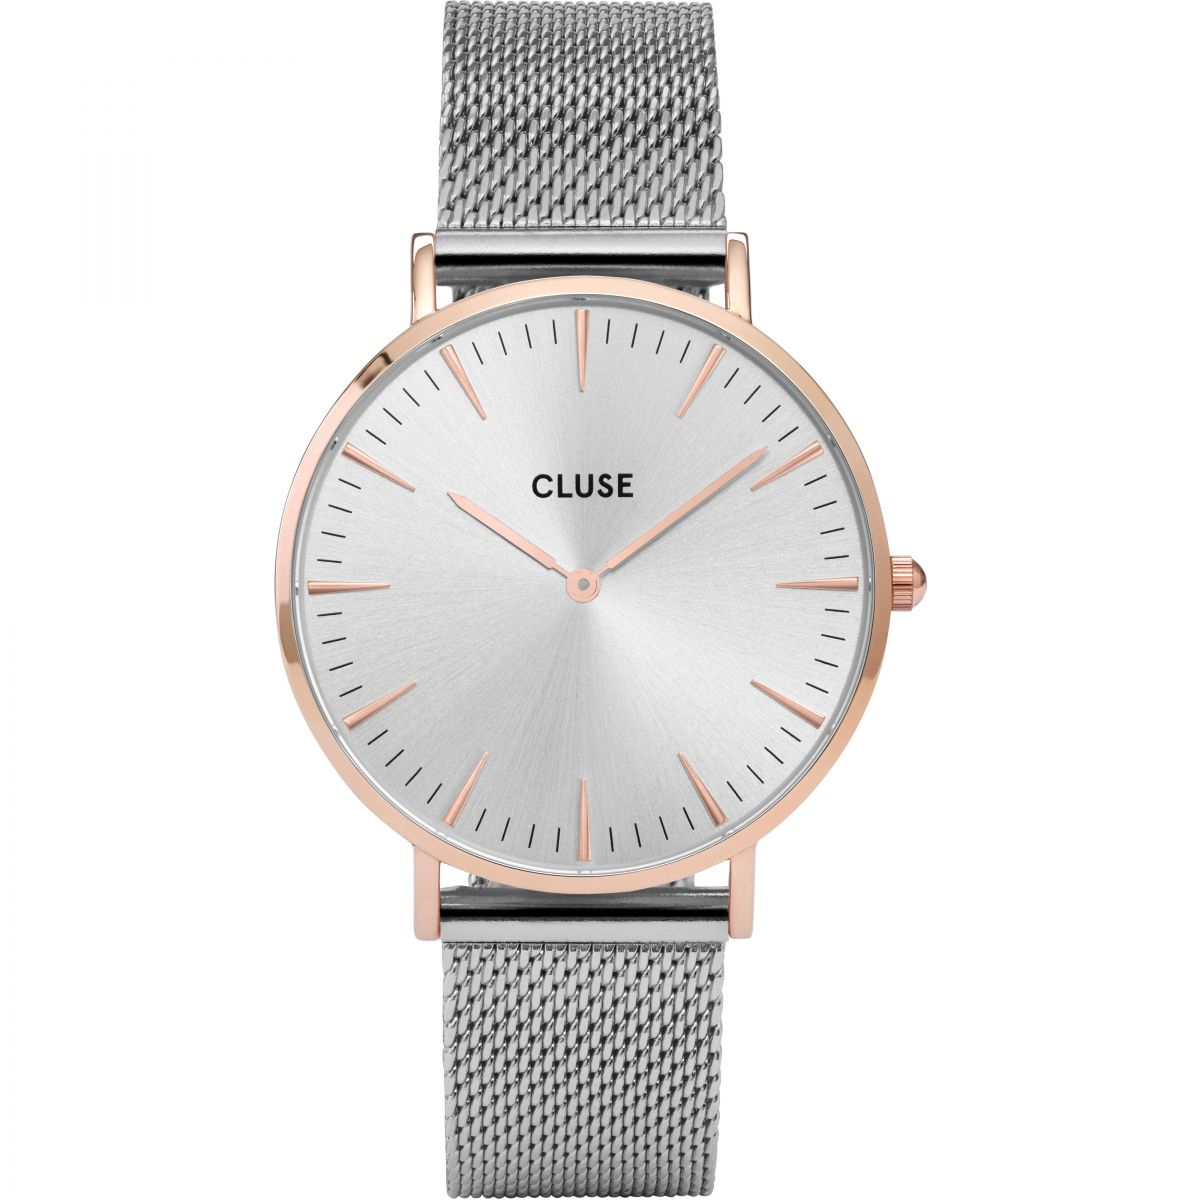 online buycluse at rsp gold cluse watch johnlewis strap pdp rose watches white leather com main la vedette